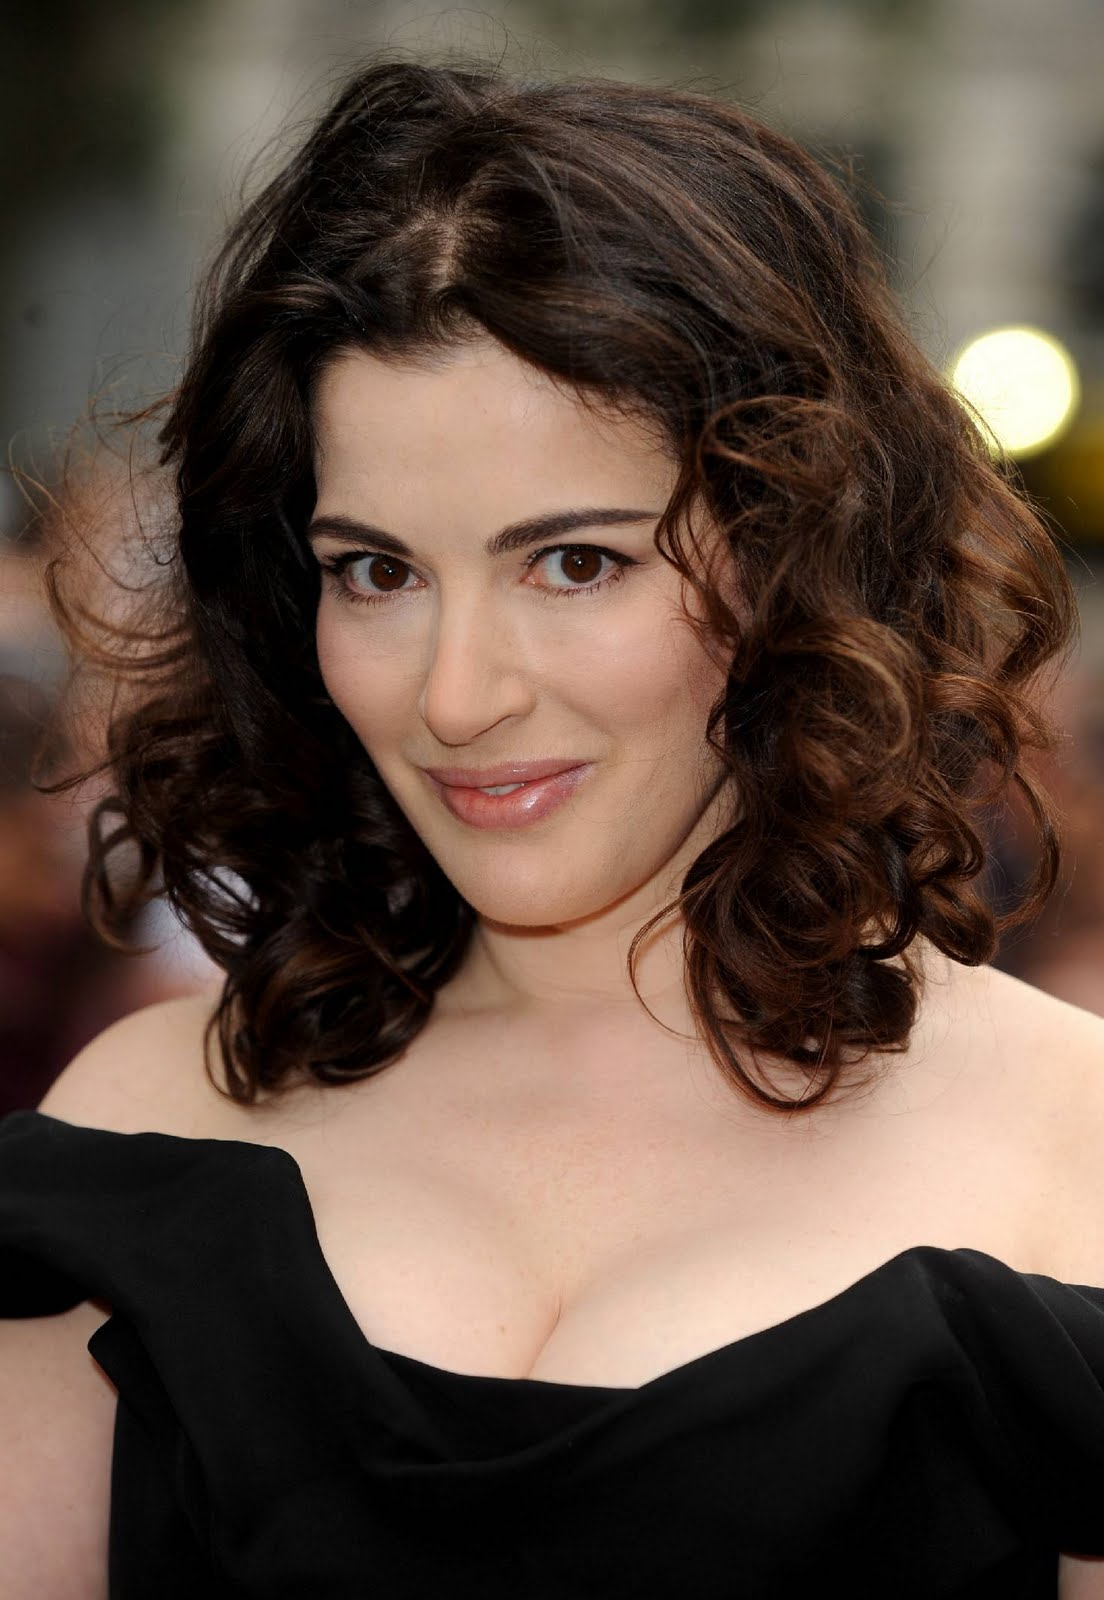 Multiplewallpapers Nigella Lawson Hot Pictures